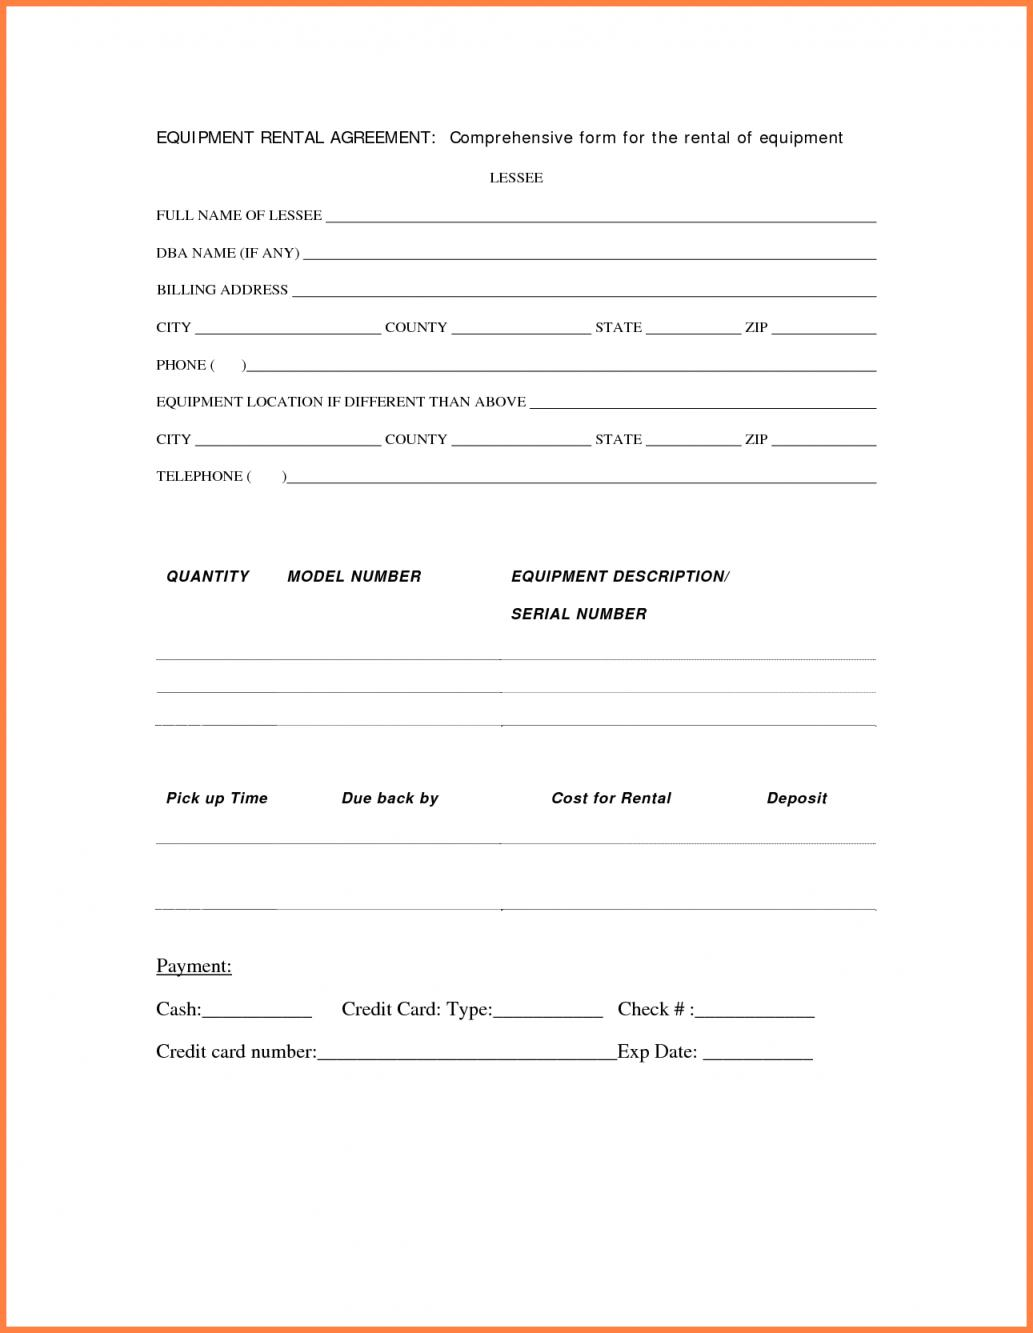 Equipment Rental Agreement Word Template